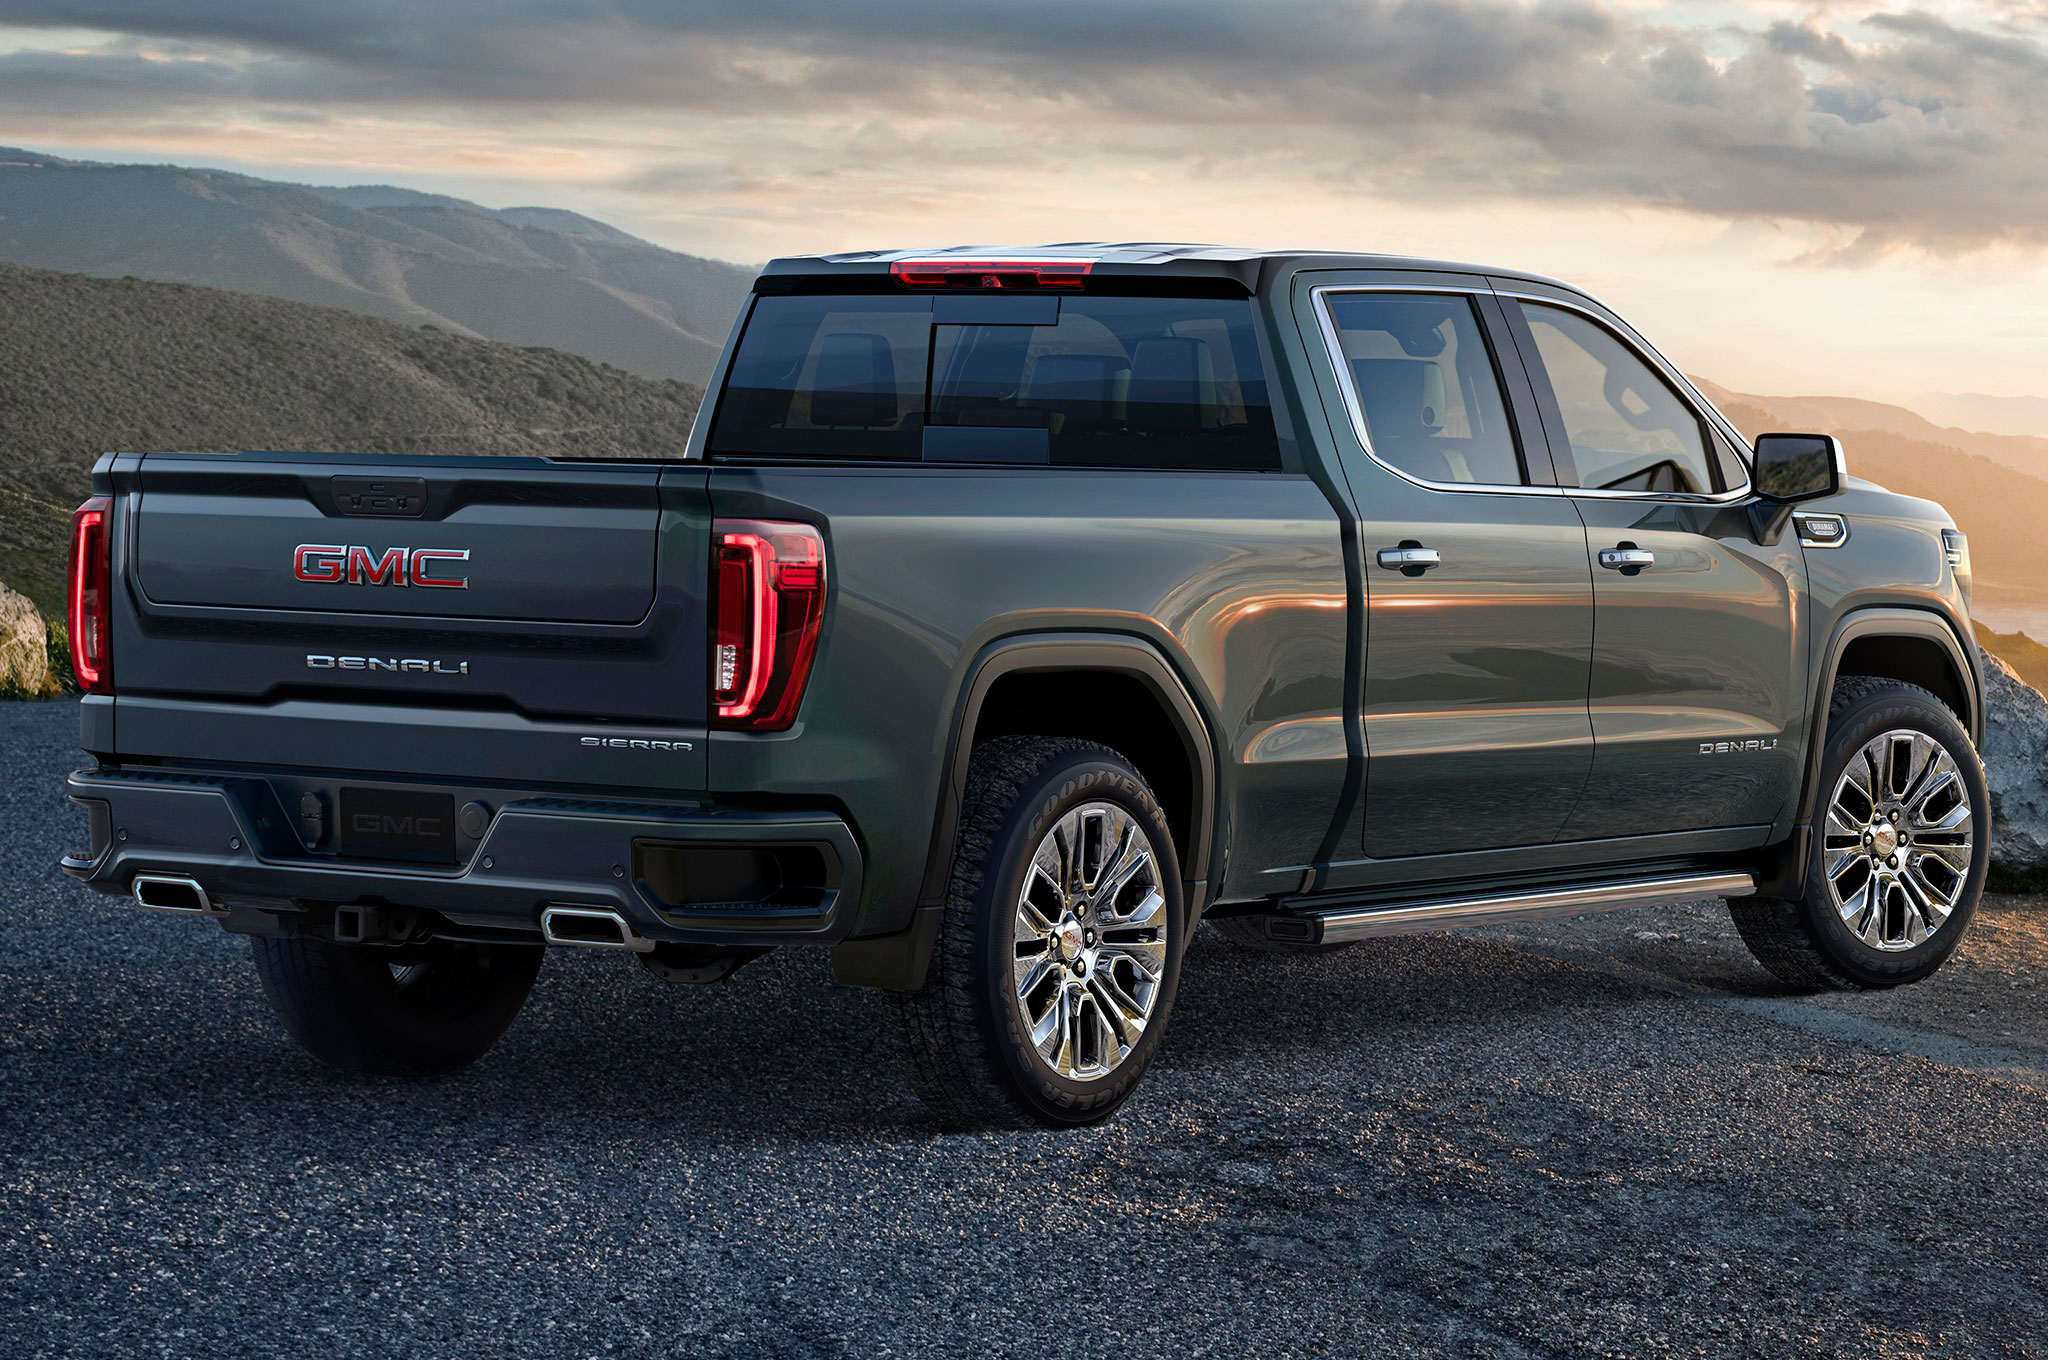 2019 GMC Sierra 1500 Denali Rear Side View